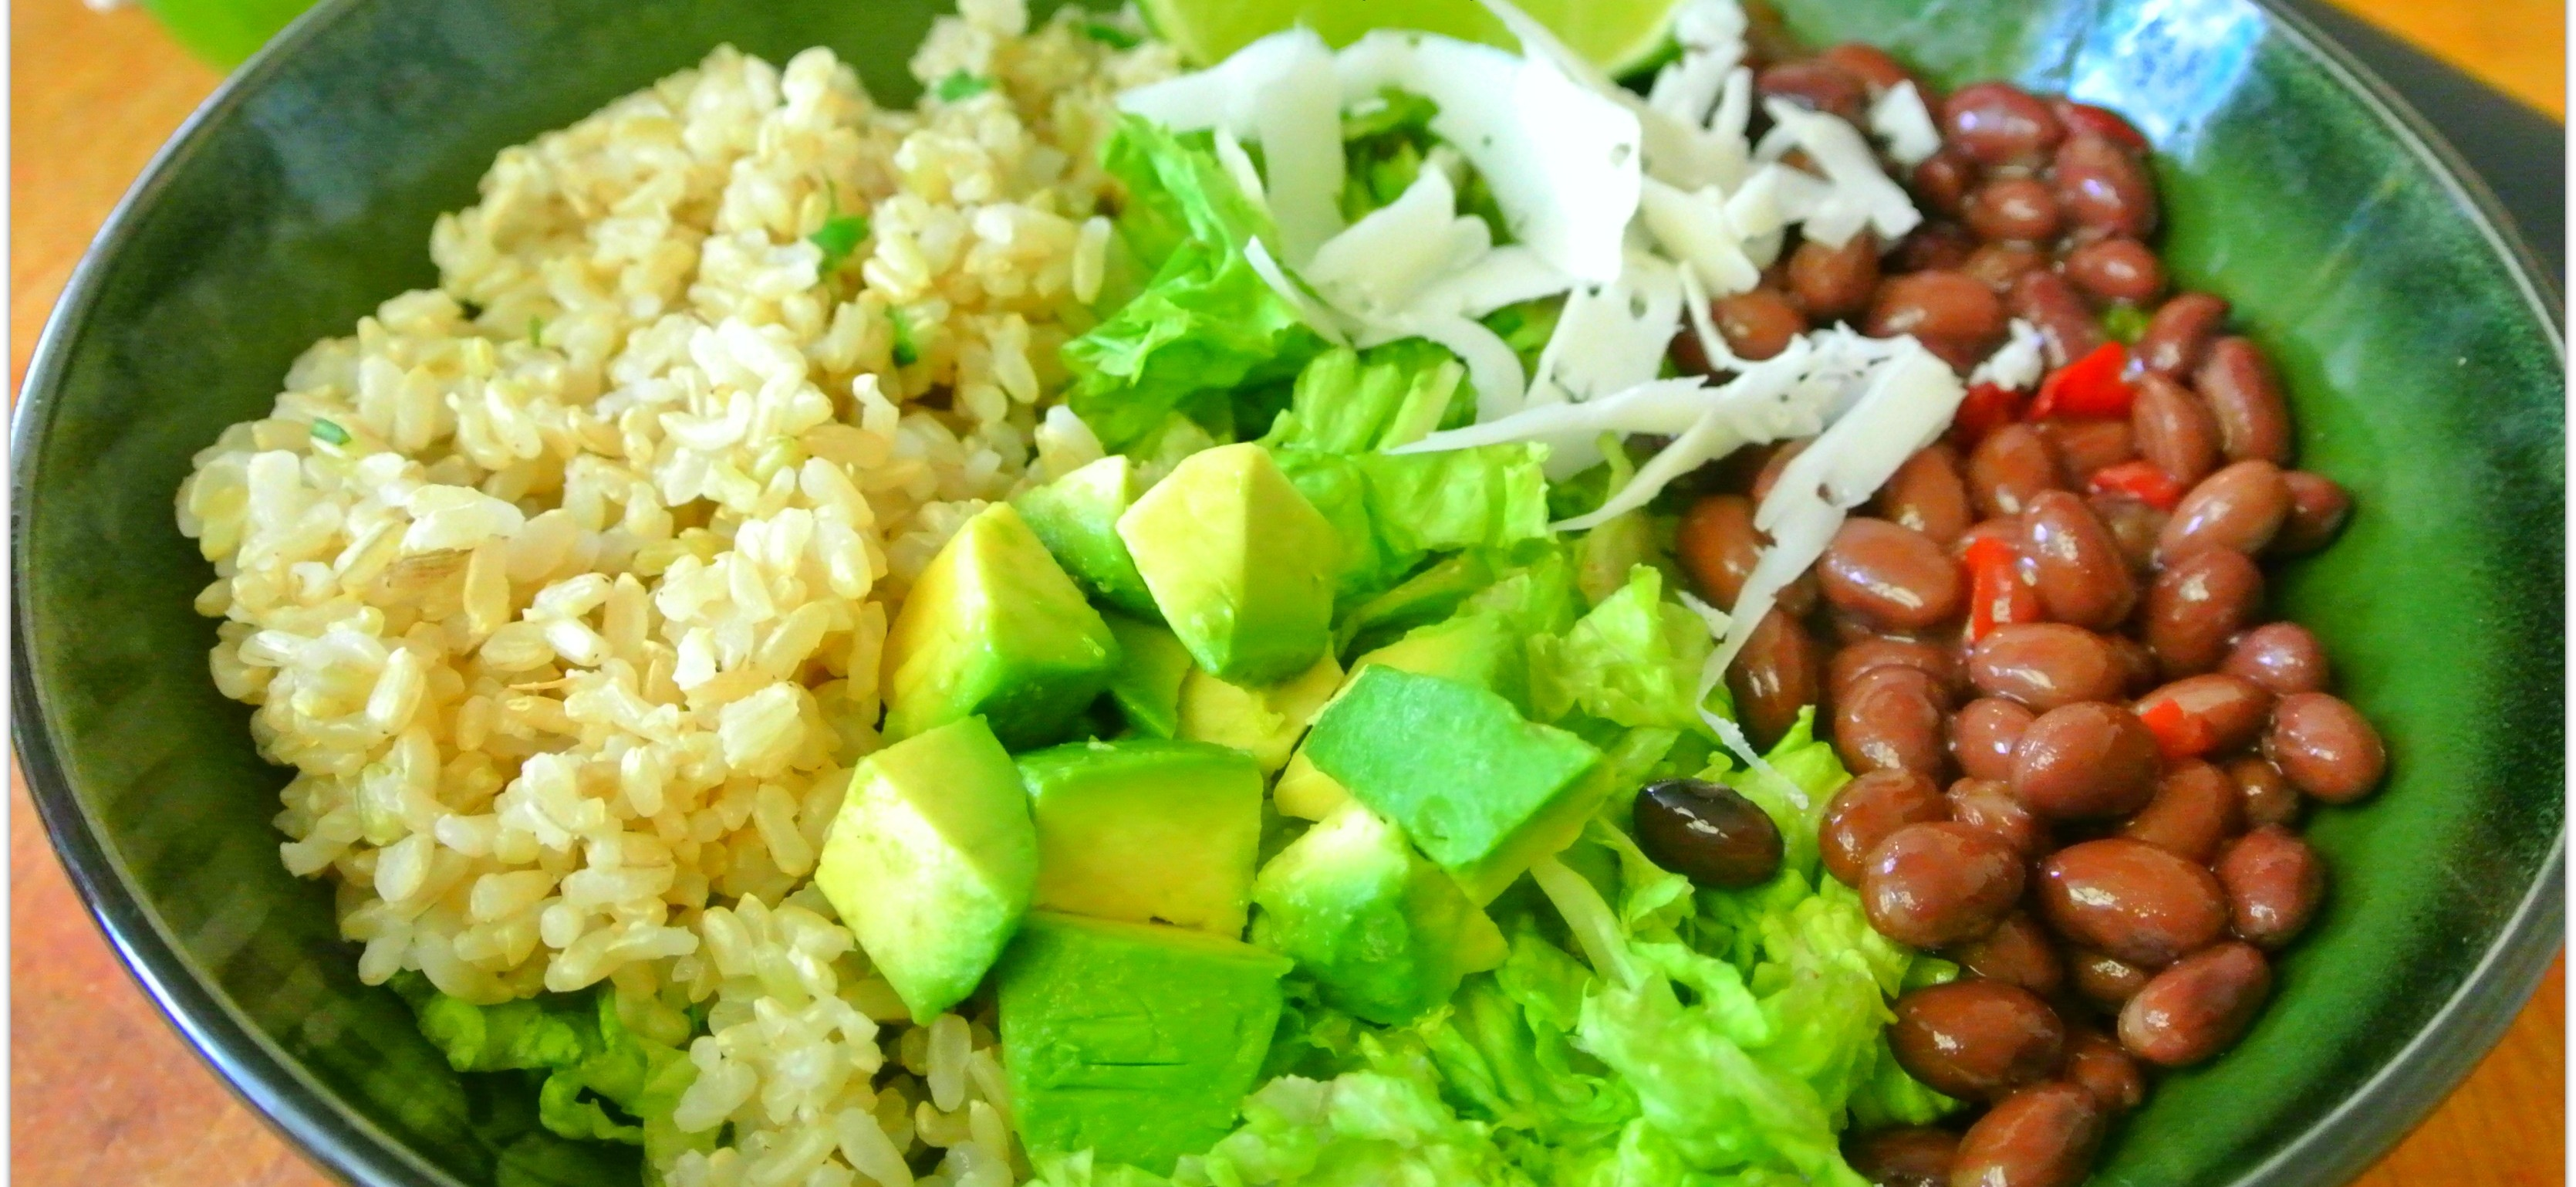 Brown-Rice-and-Beans-Salad-Recipe-1